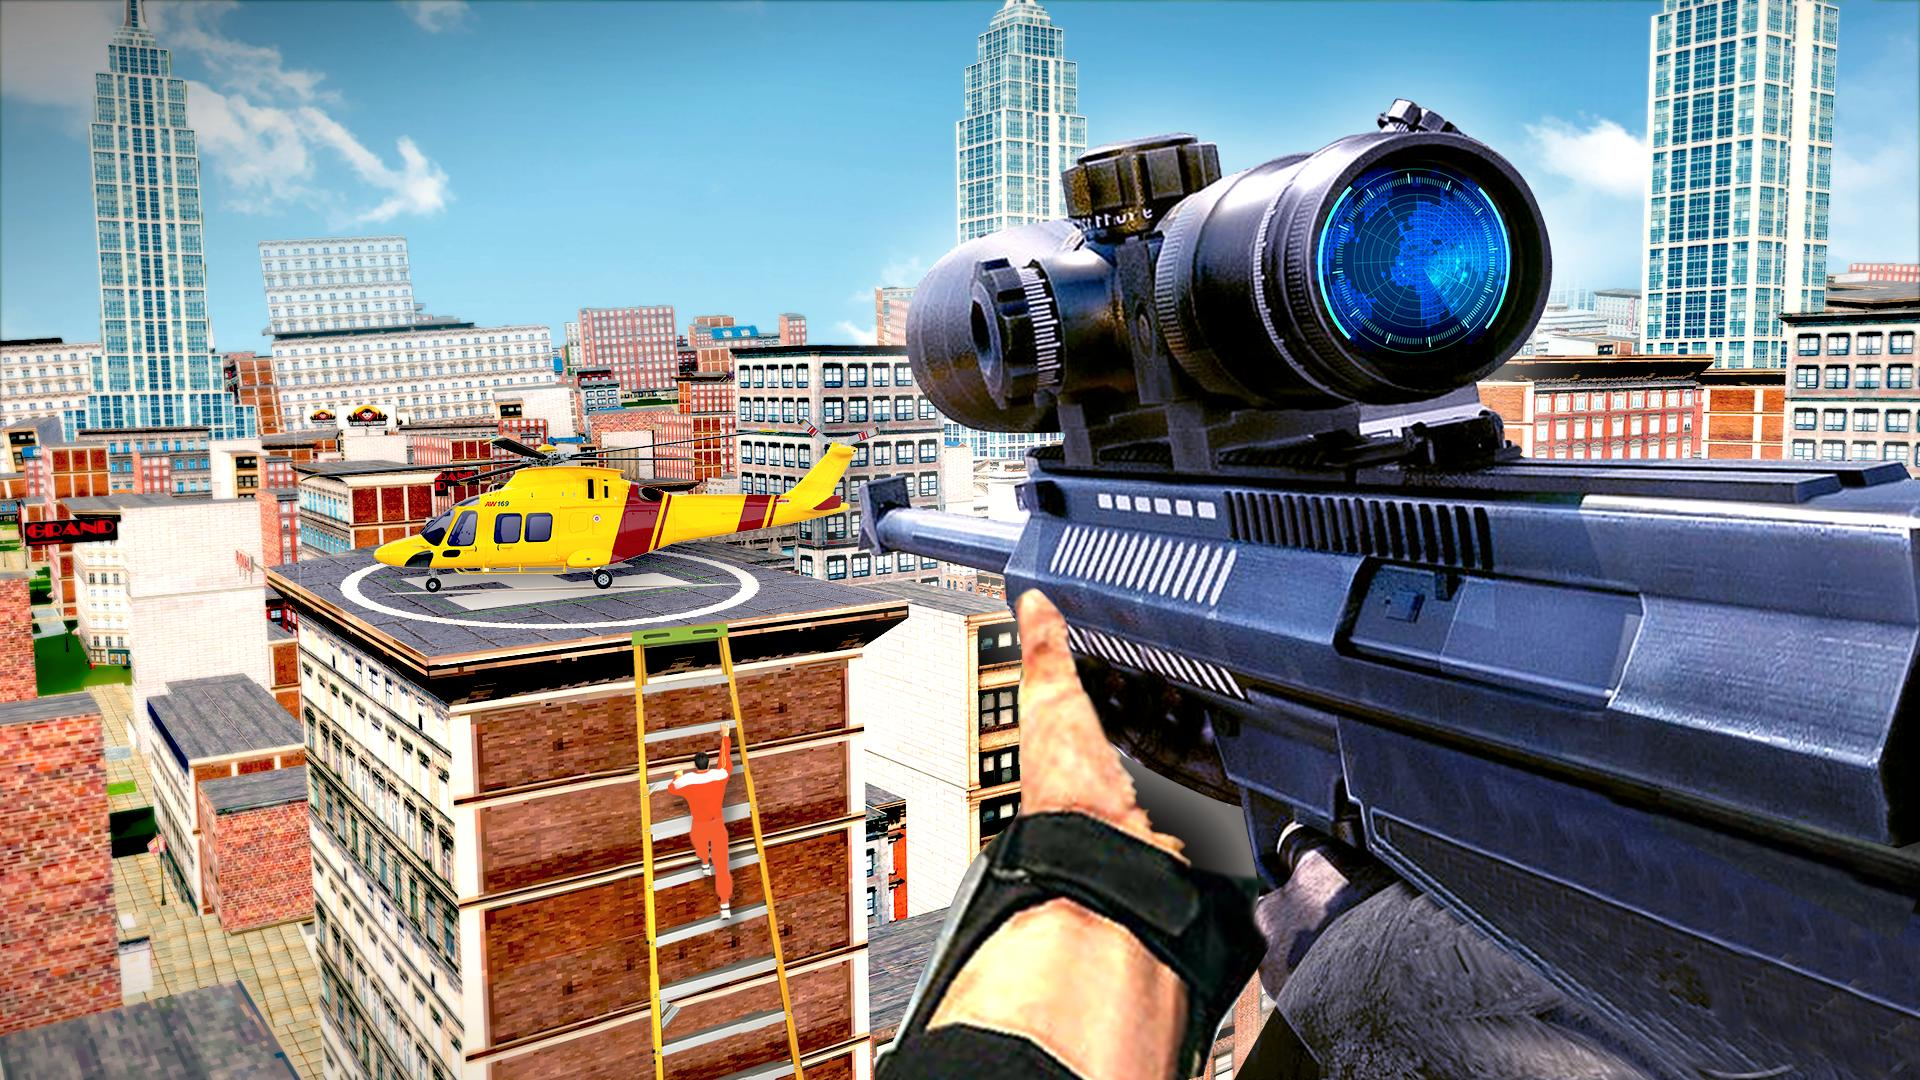 New Sniper 3d Shooting 2019 - Free Sniper Games 1.0 Screenshot 11